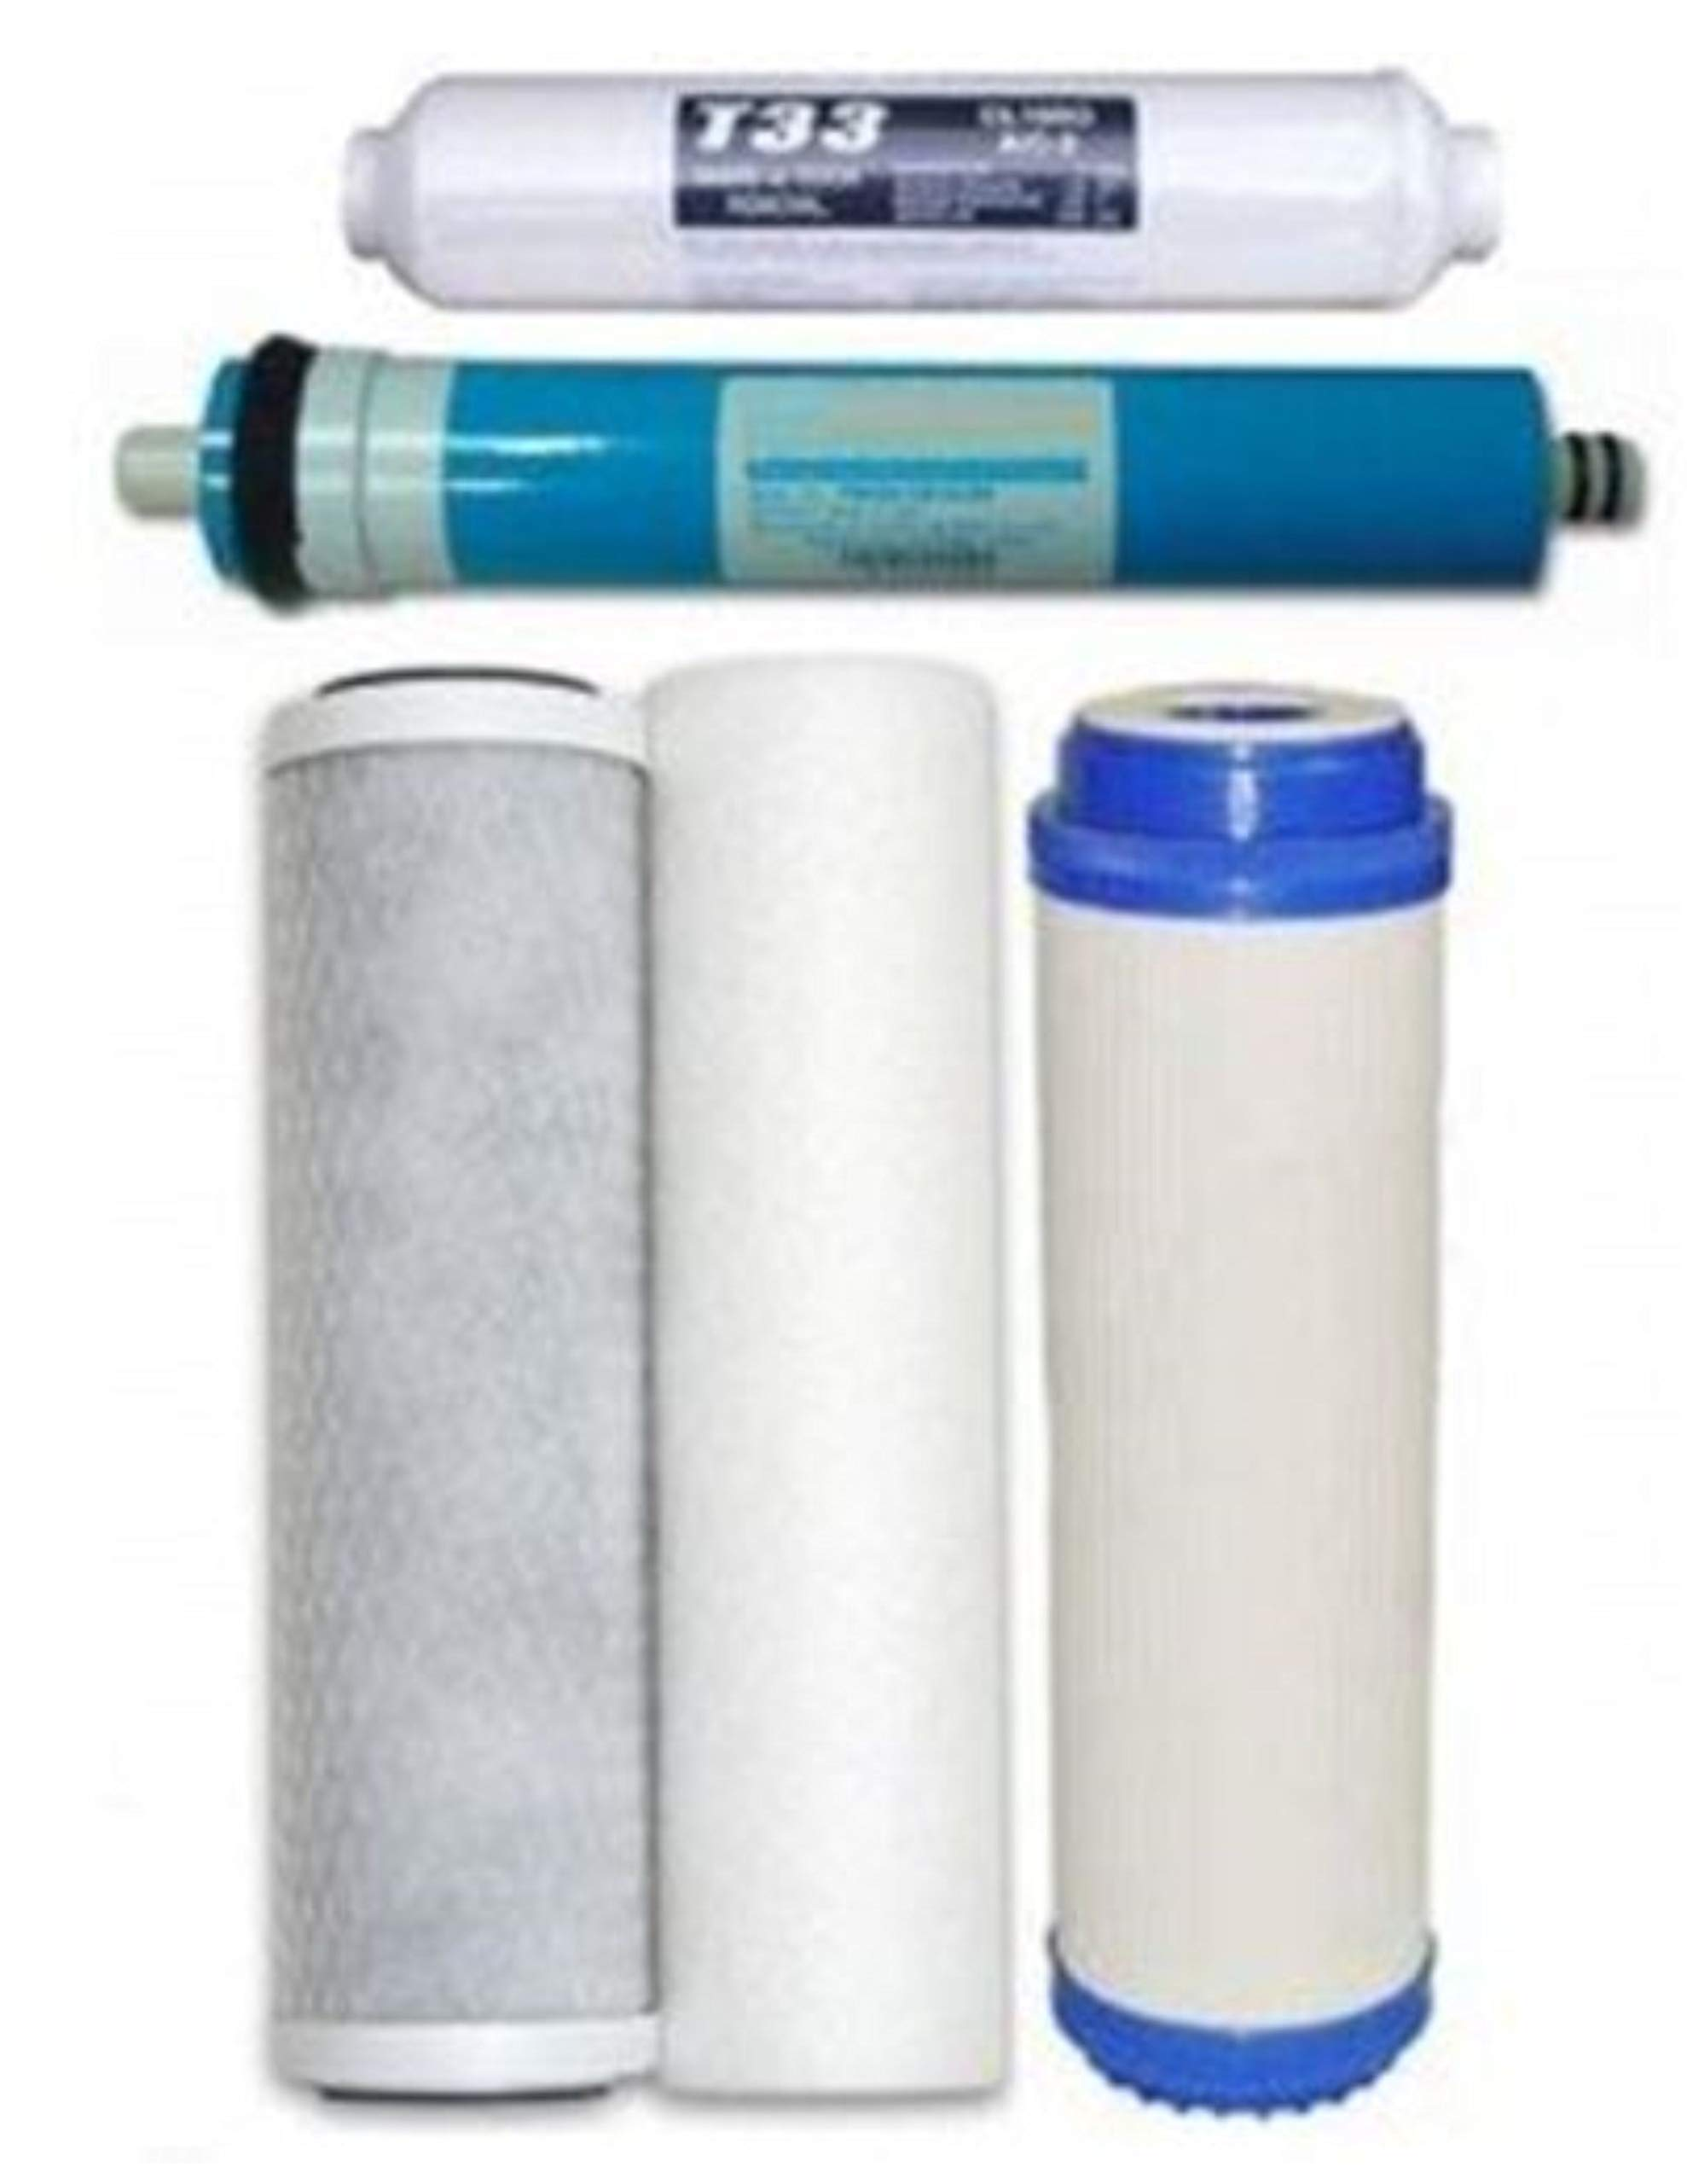 CFS Universal 5 stage Reverse Osmosis Replacement Filter set with 75 GPD membrane, HAGUE WATERMAX H5000 by CFS